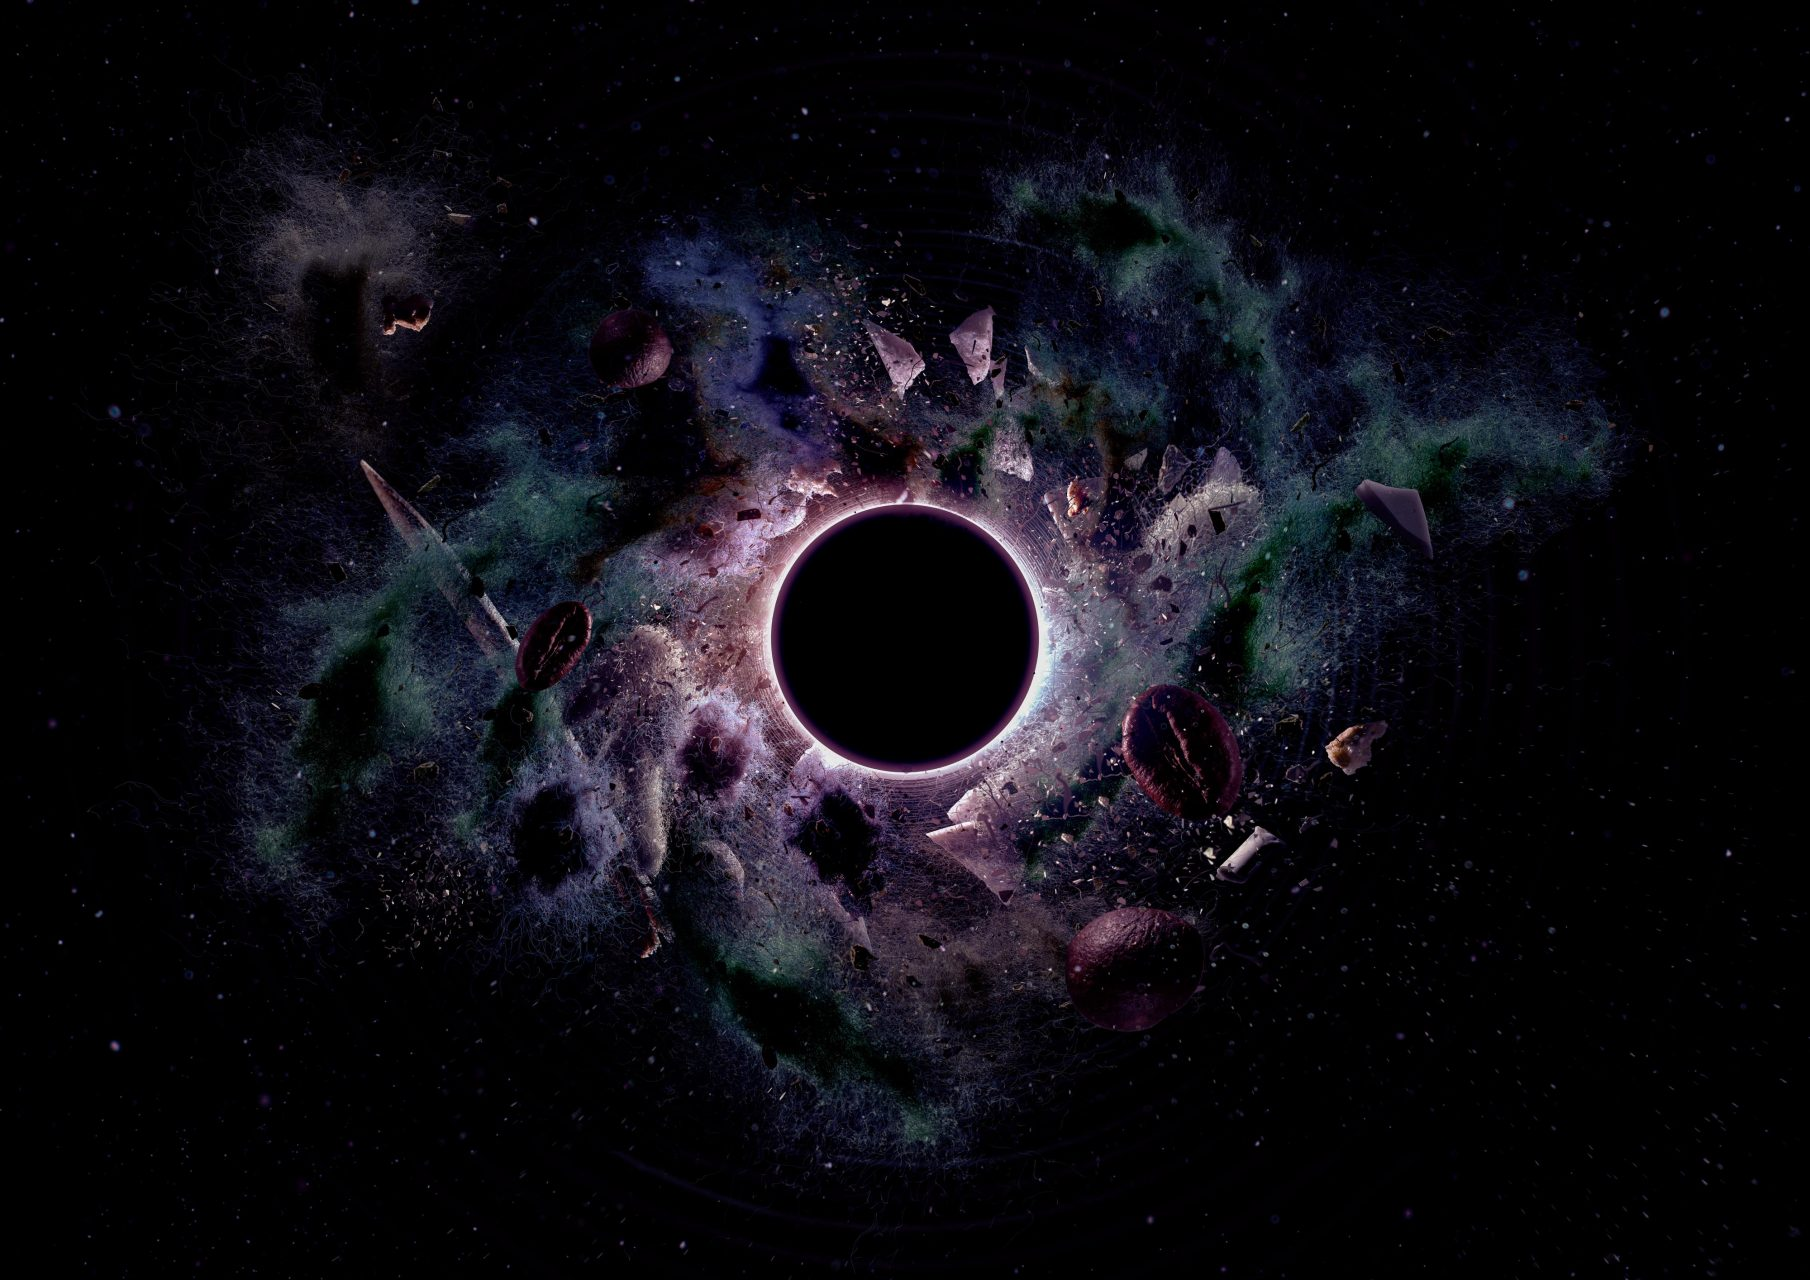 black hole projects - photo #36